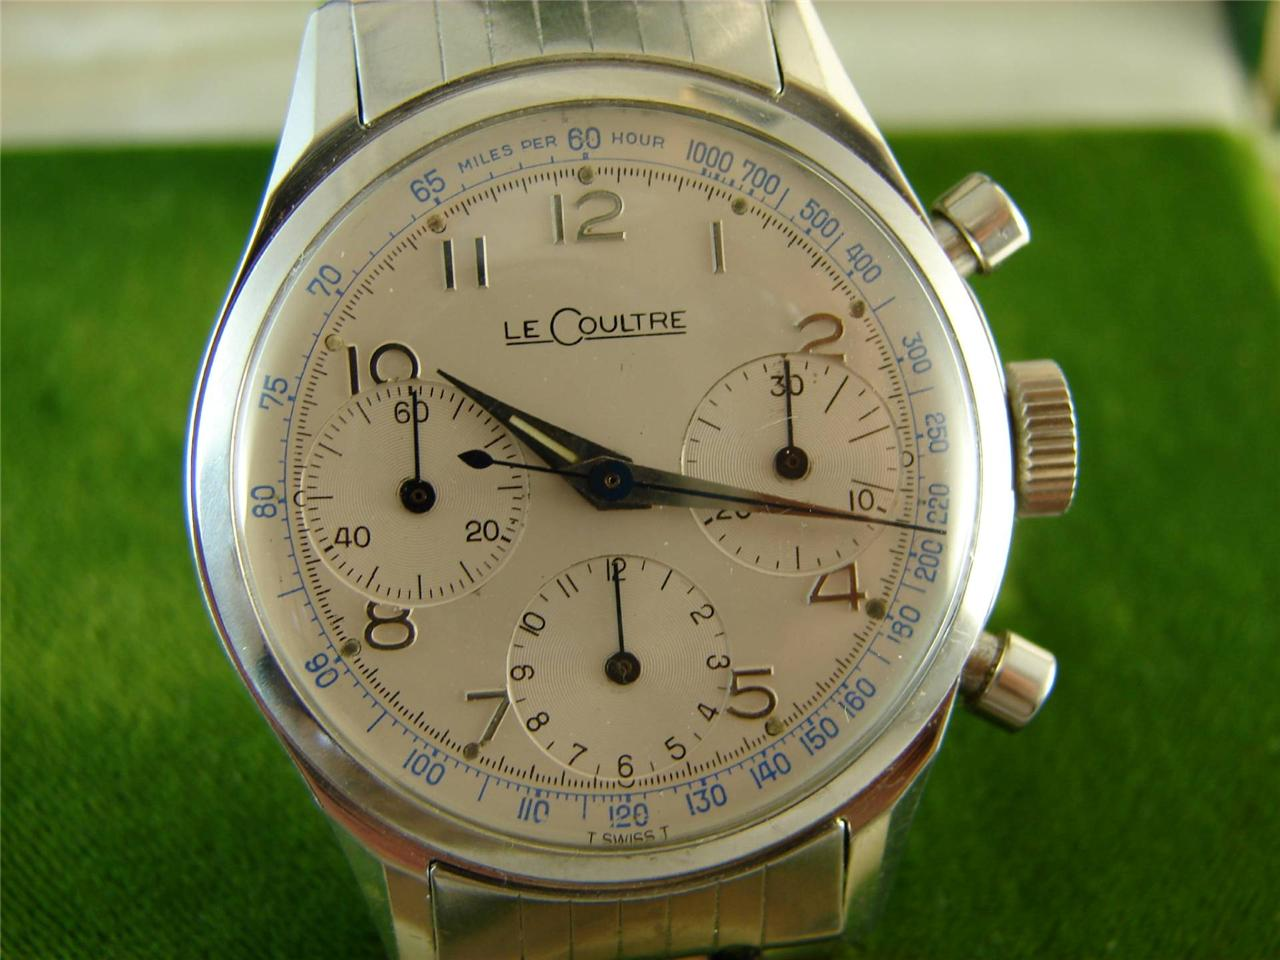 ab0cf348b26e Two vintage LeCoultre chronos - Rolex Forums - Rolex Watch Forum